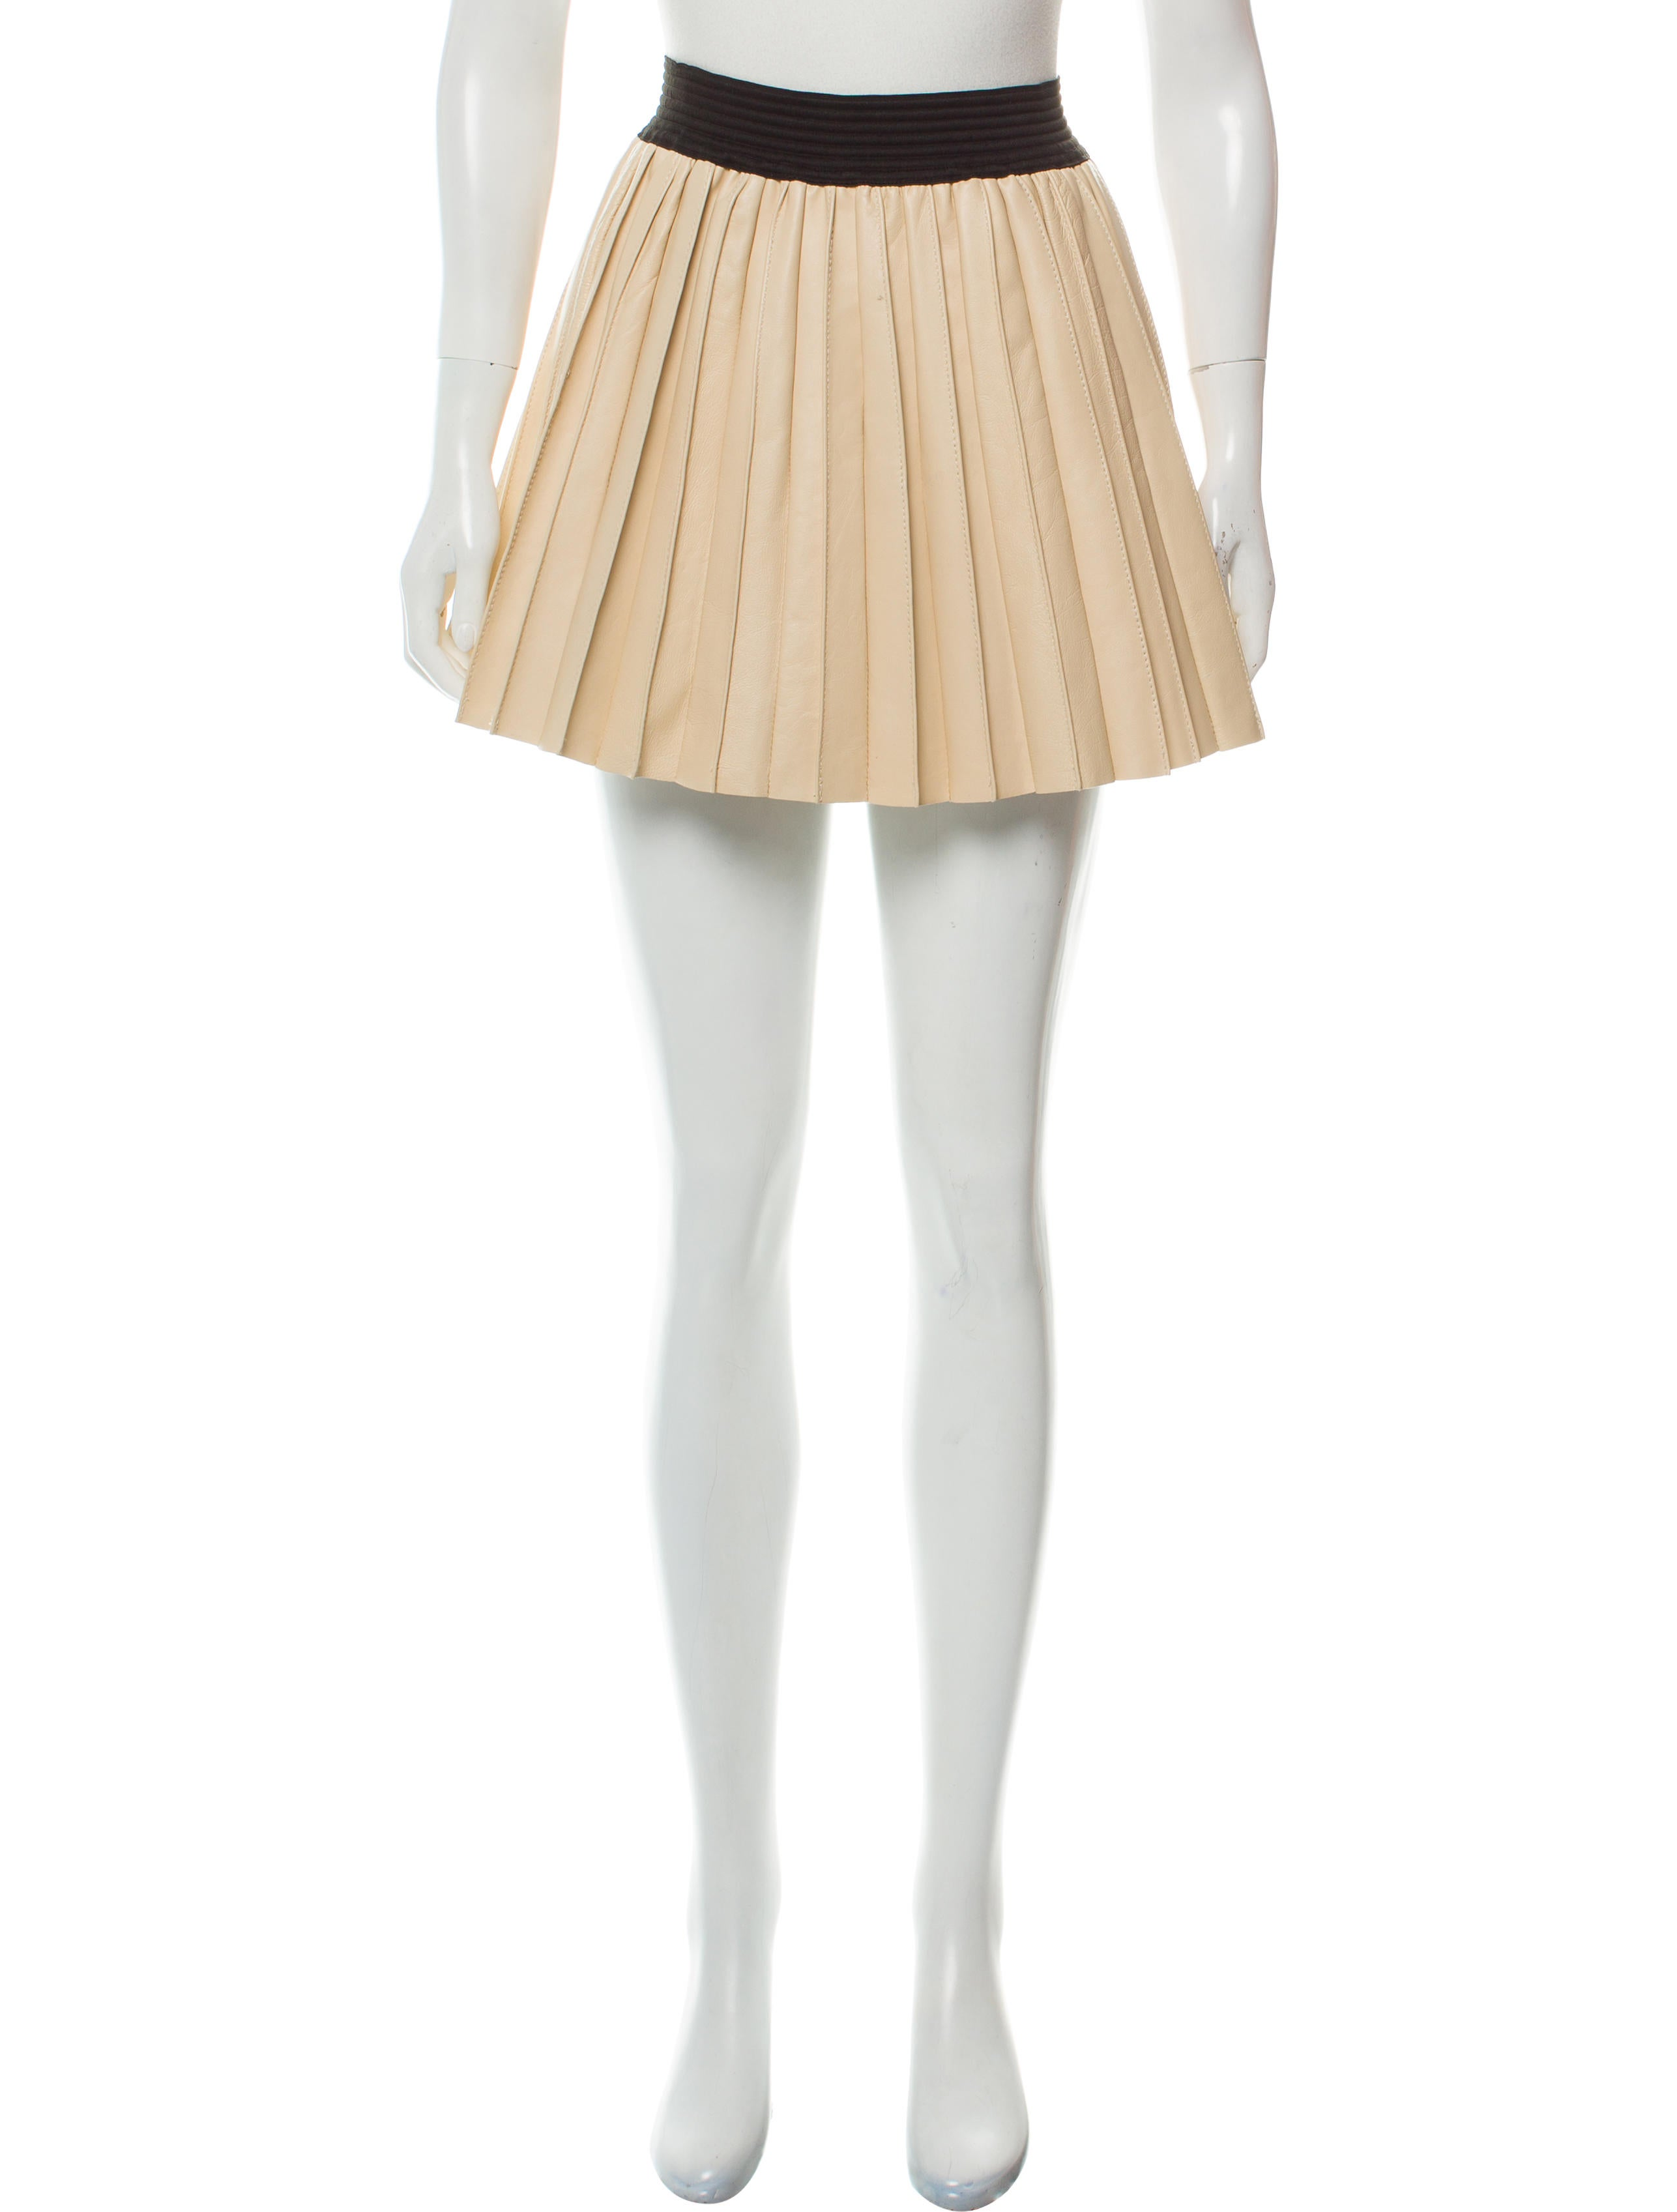 76c7846be1 Parker Leather Pleated Skirt - Clothing - WPK27697 | The RealReal